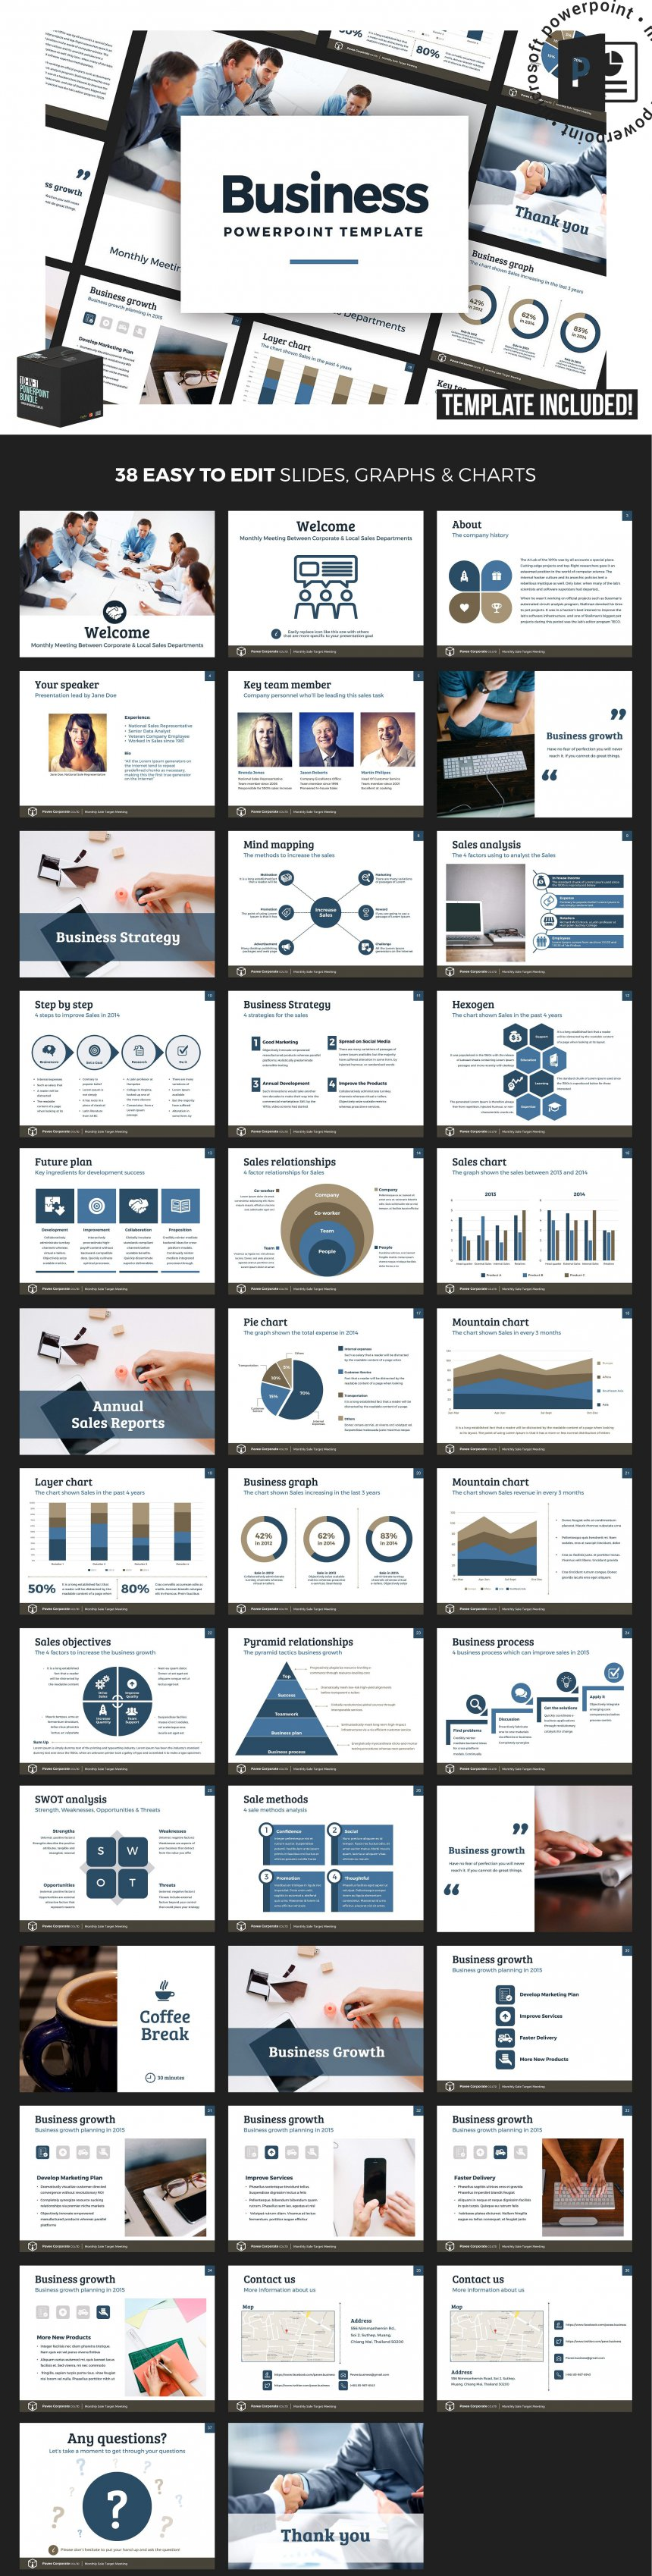 10 creative and professional powerpoint templates plus bonuses coporate powerpoint template v1 toneelgroepblik Image collections